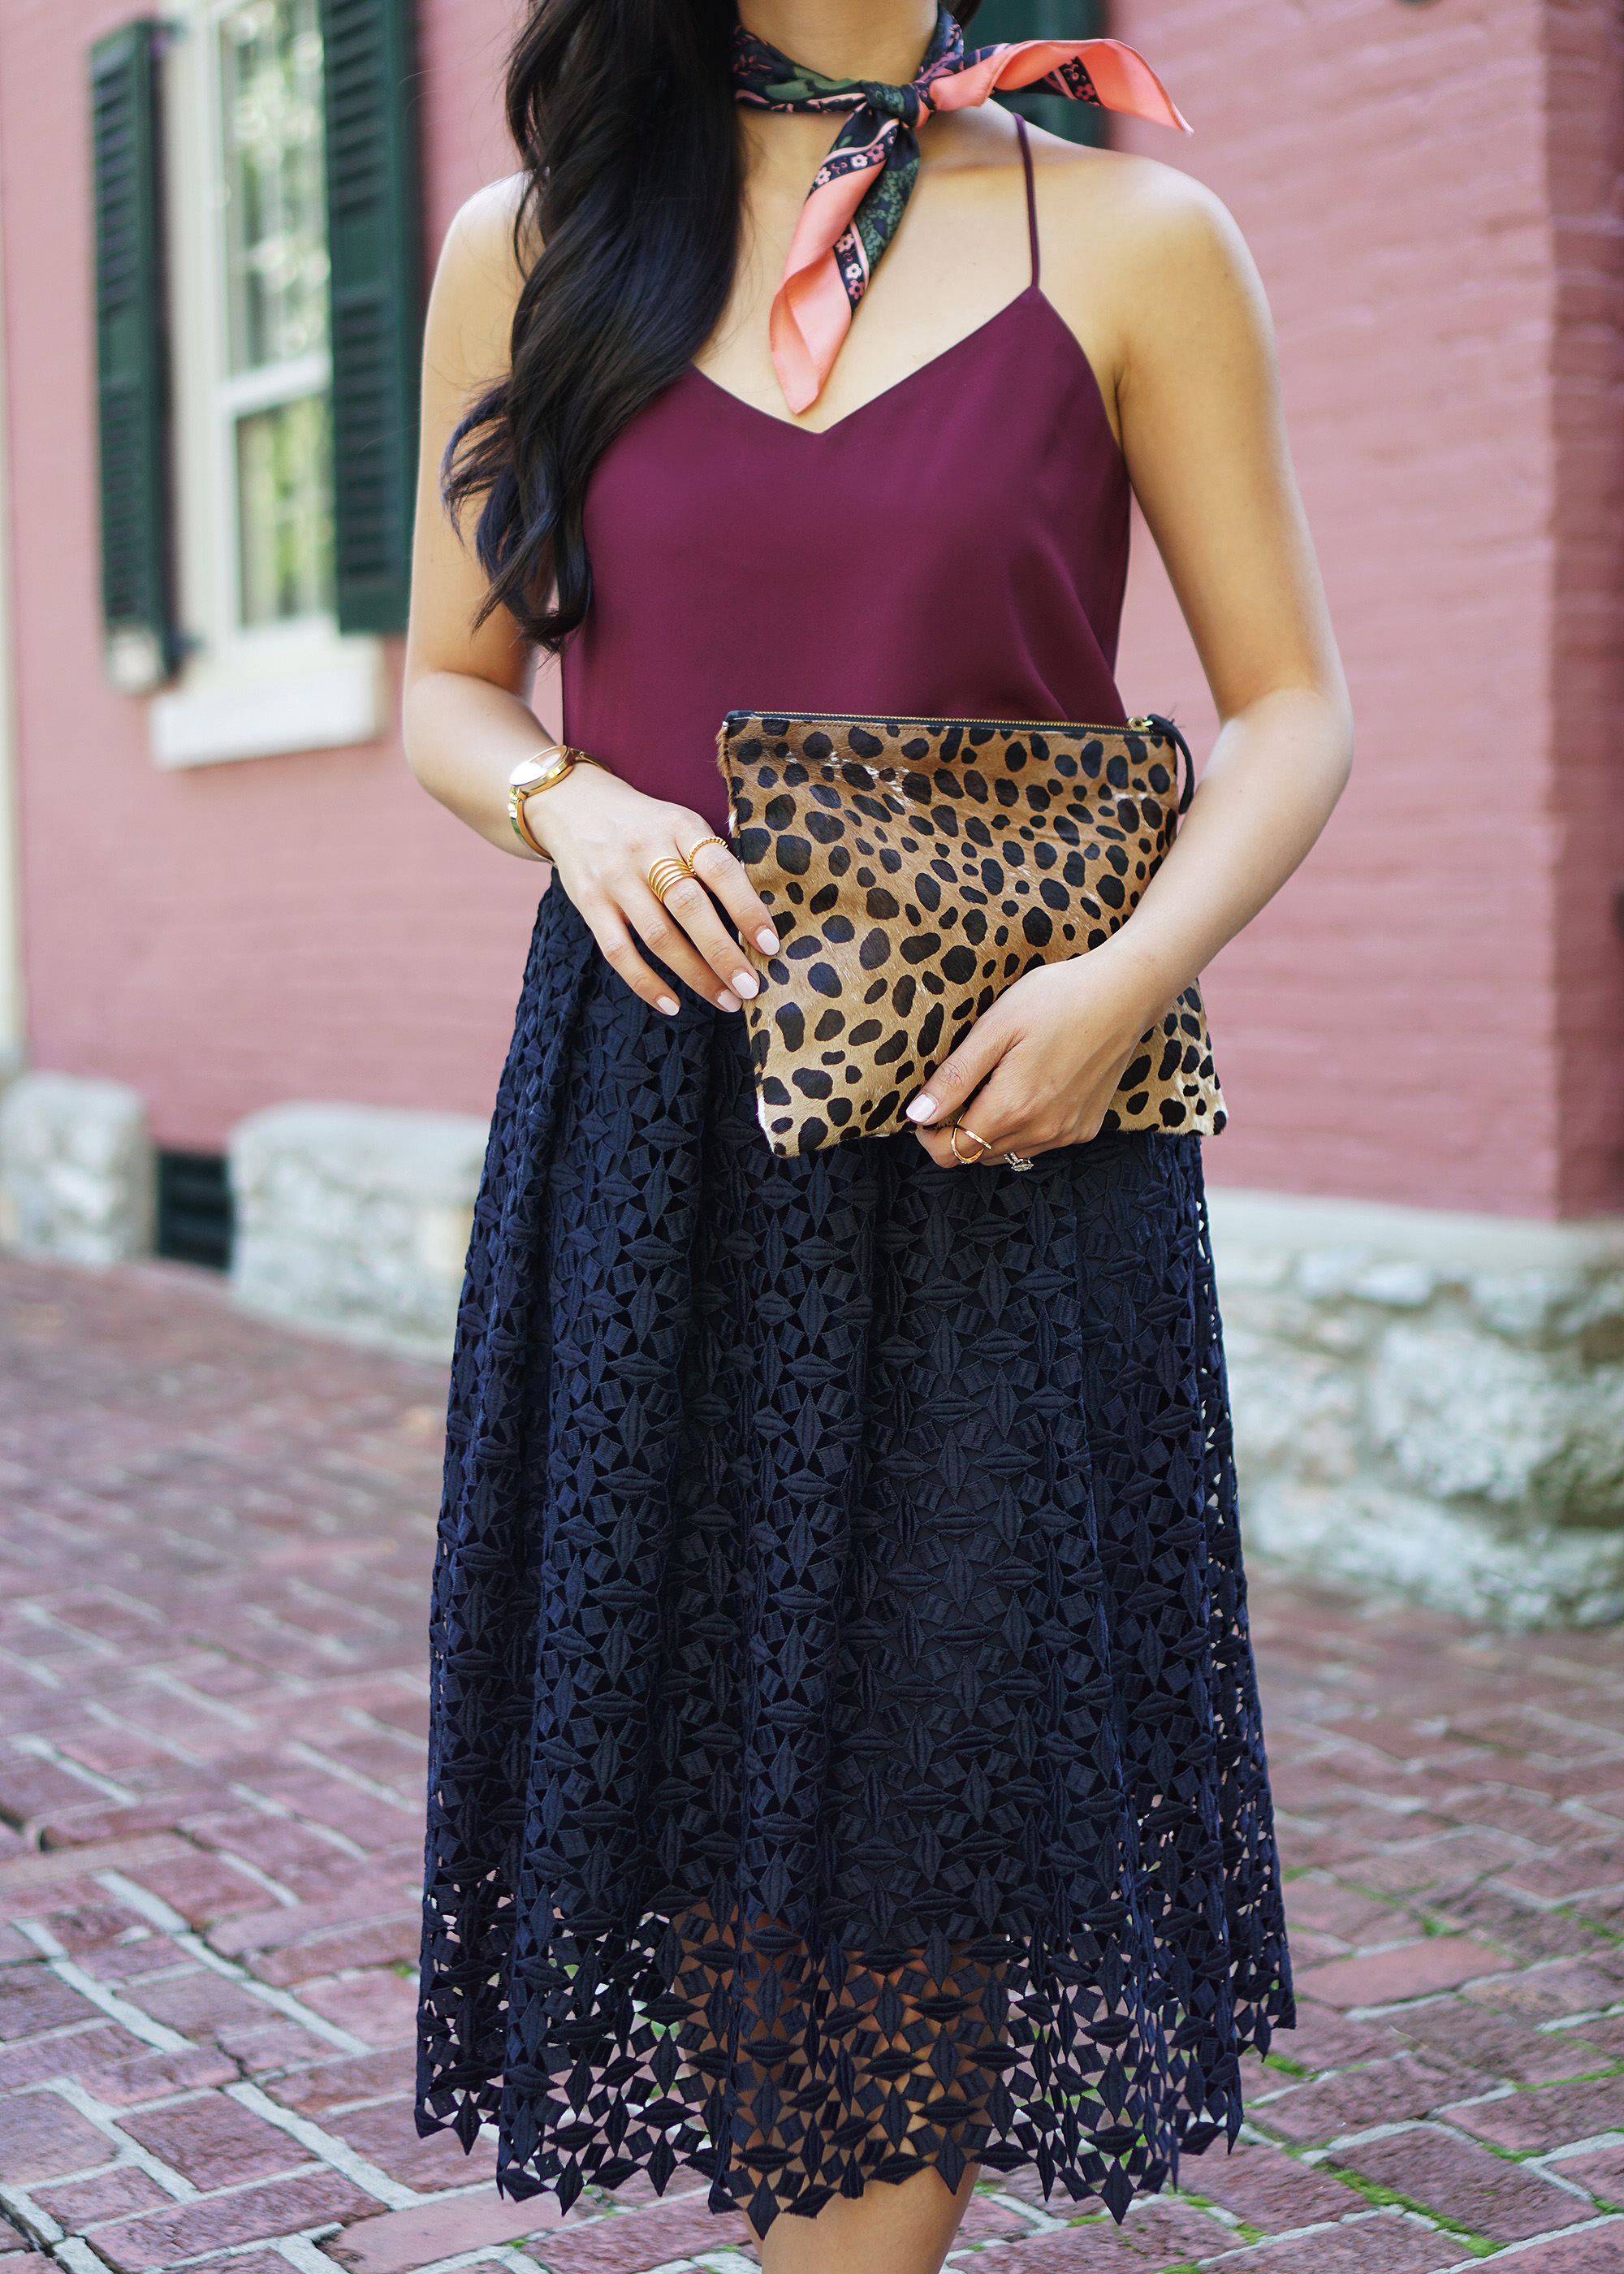 Fall Style in Warm Weather: Burgundy, Navy and Leopard